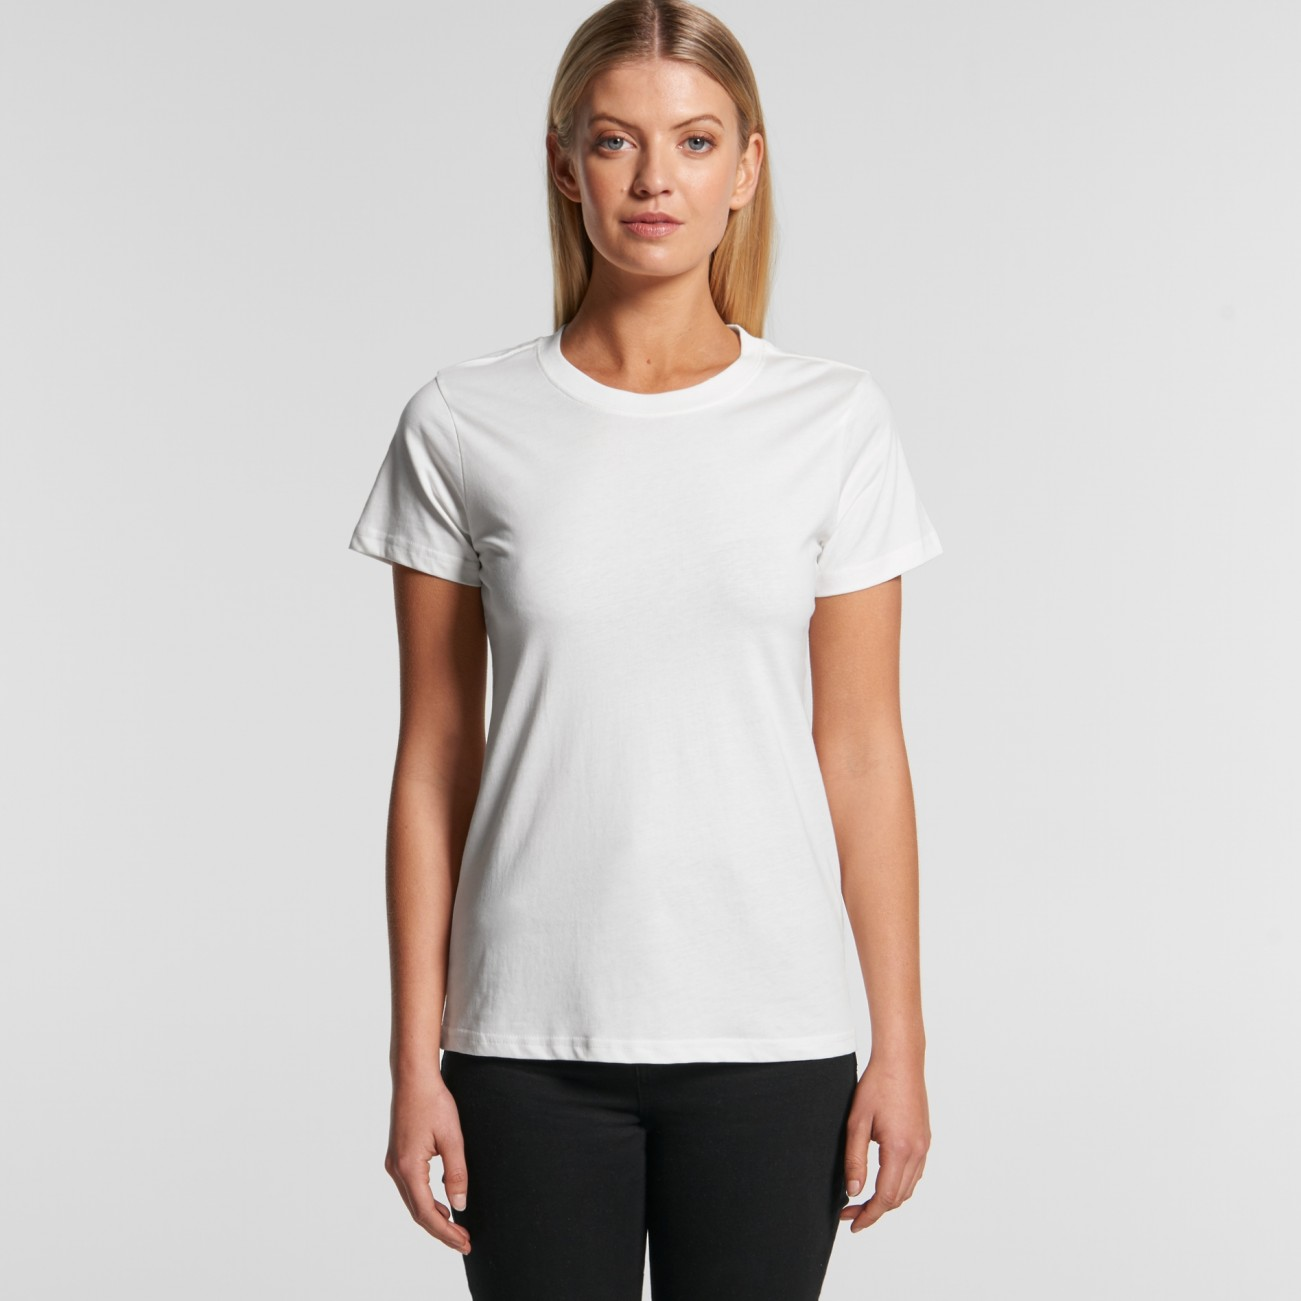 AS Colour Wo's Maple Organic Tee